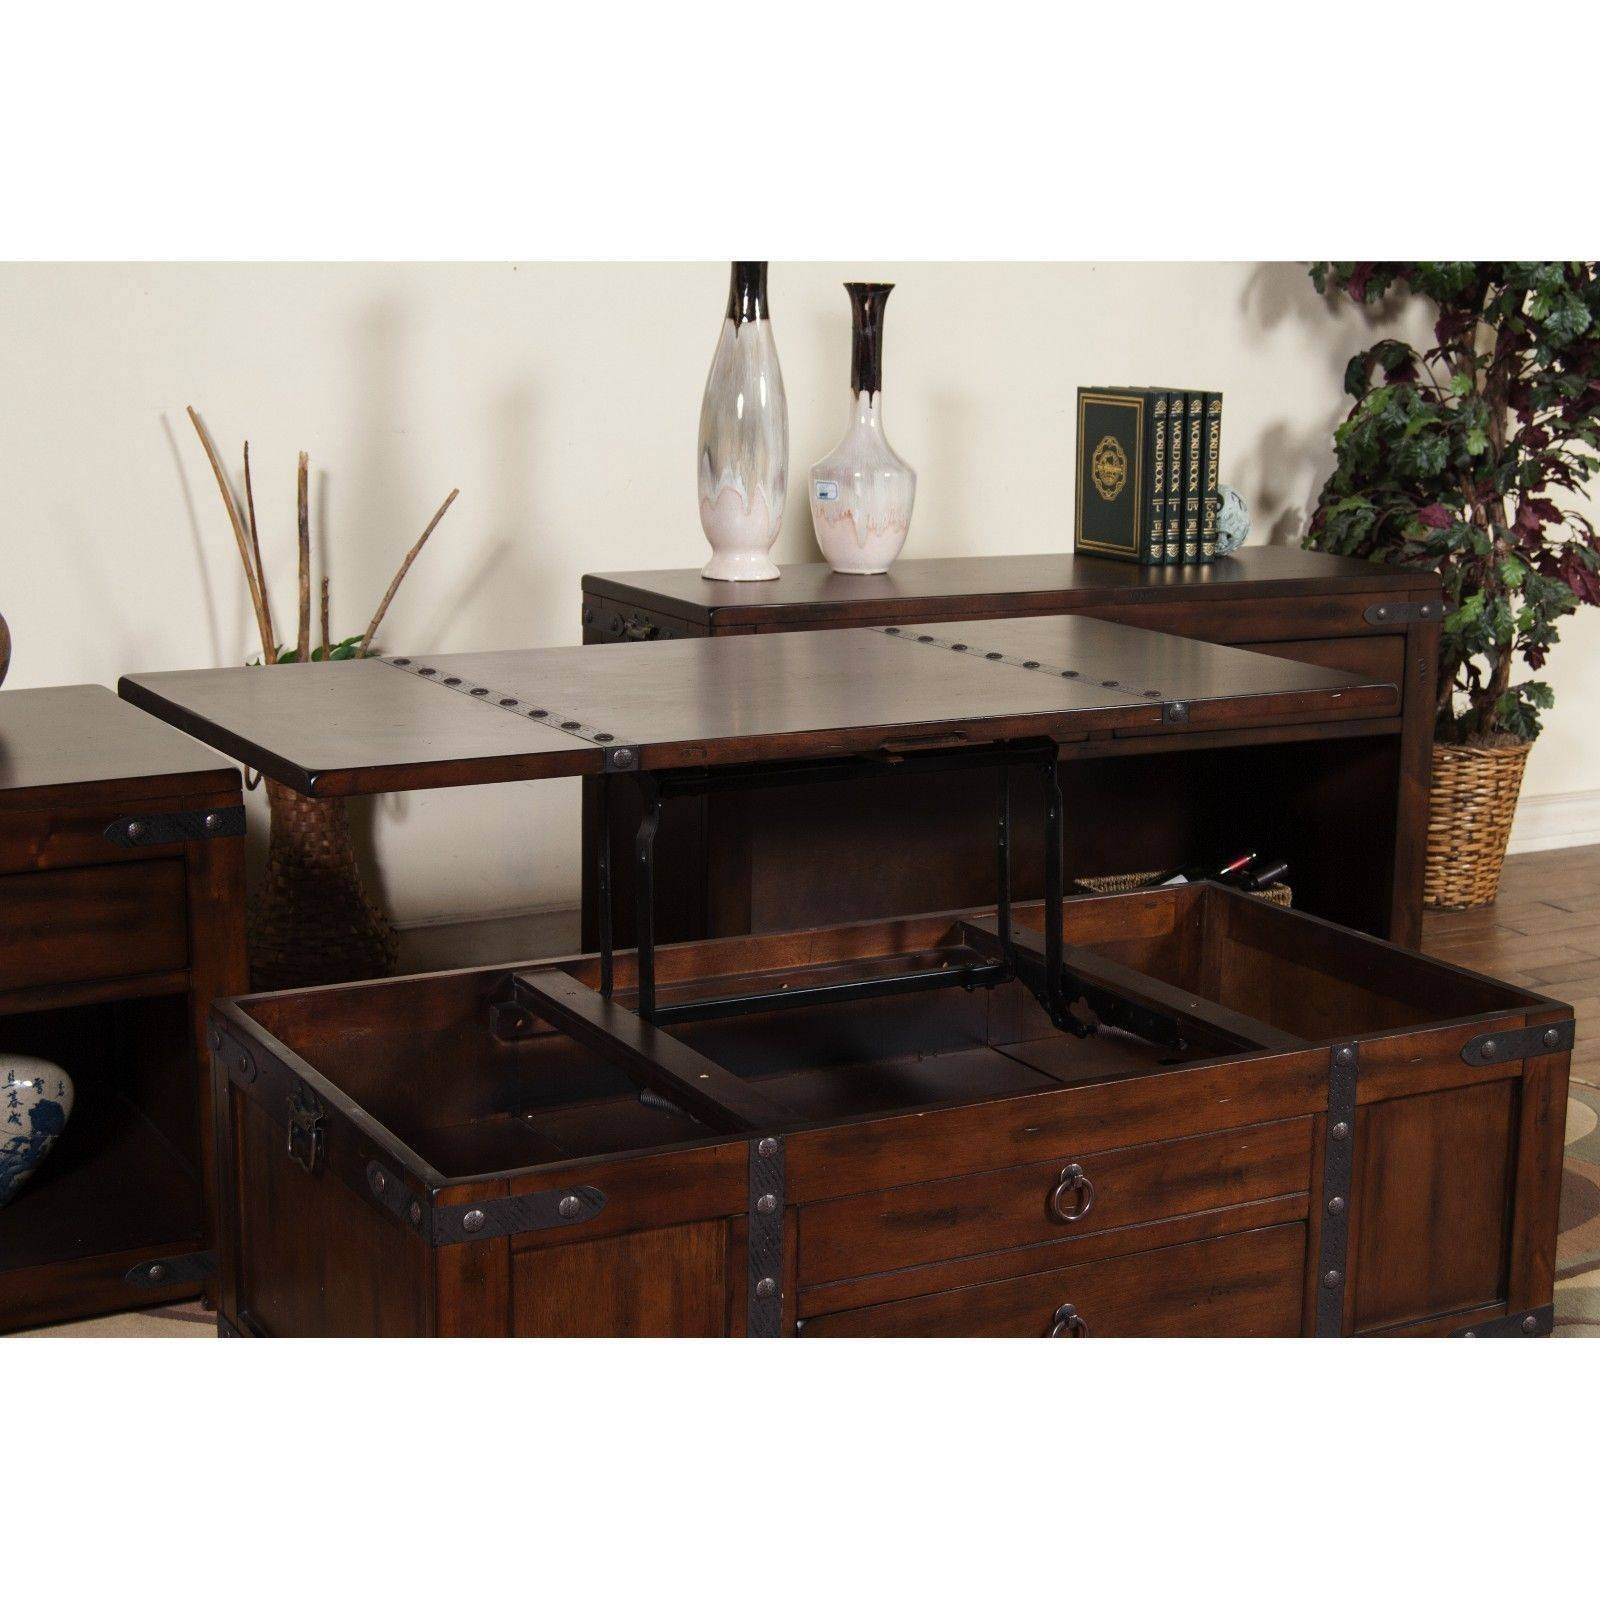 Lift Top Coffee Table Convertible Laptop Desk Tv Tray Rustic Trunk within Lift Top Coffee Tables With Storage (Image 16 of 30)